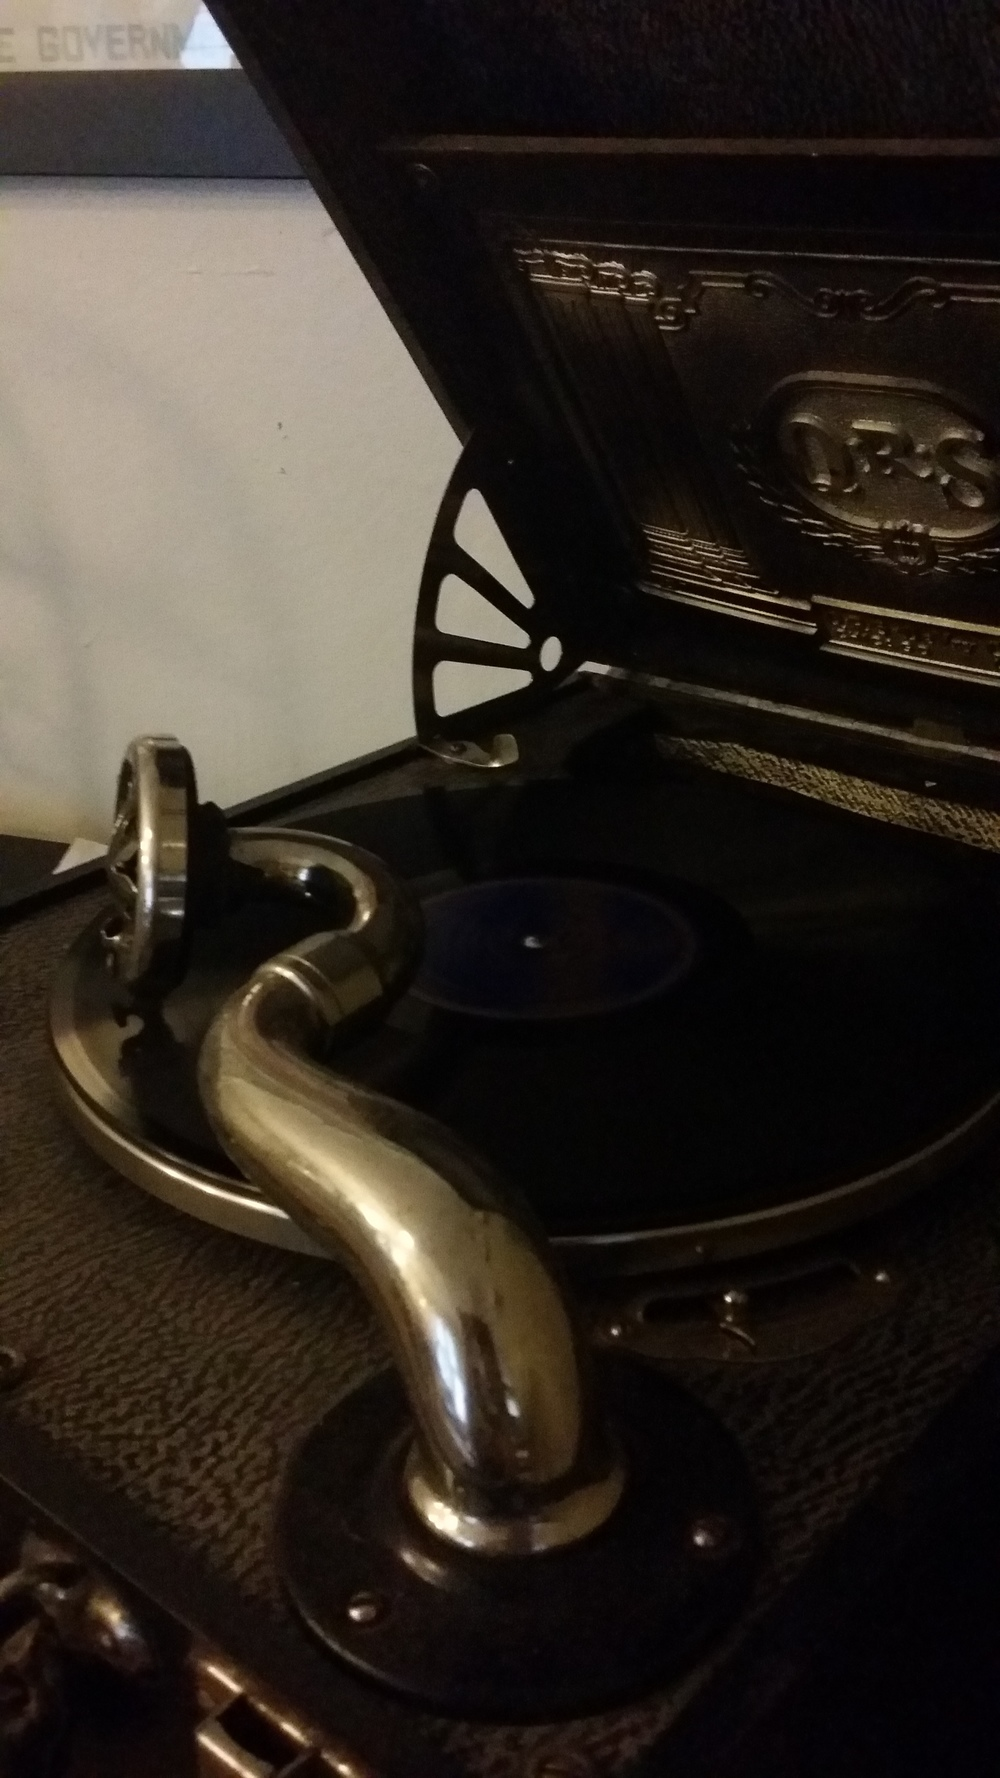 My phonograph in action, as I recorded I'm a Jazz Vampire for your listening pleasure.